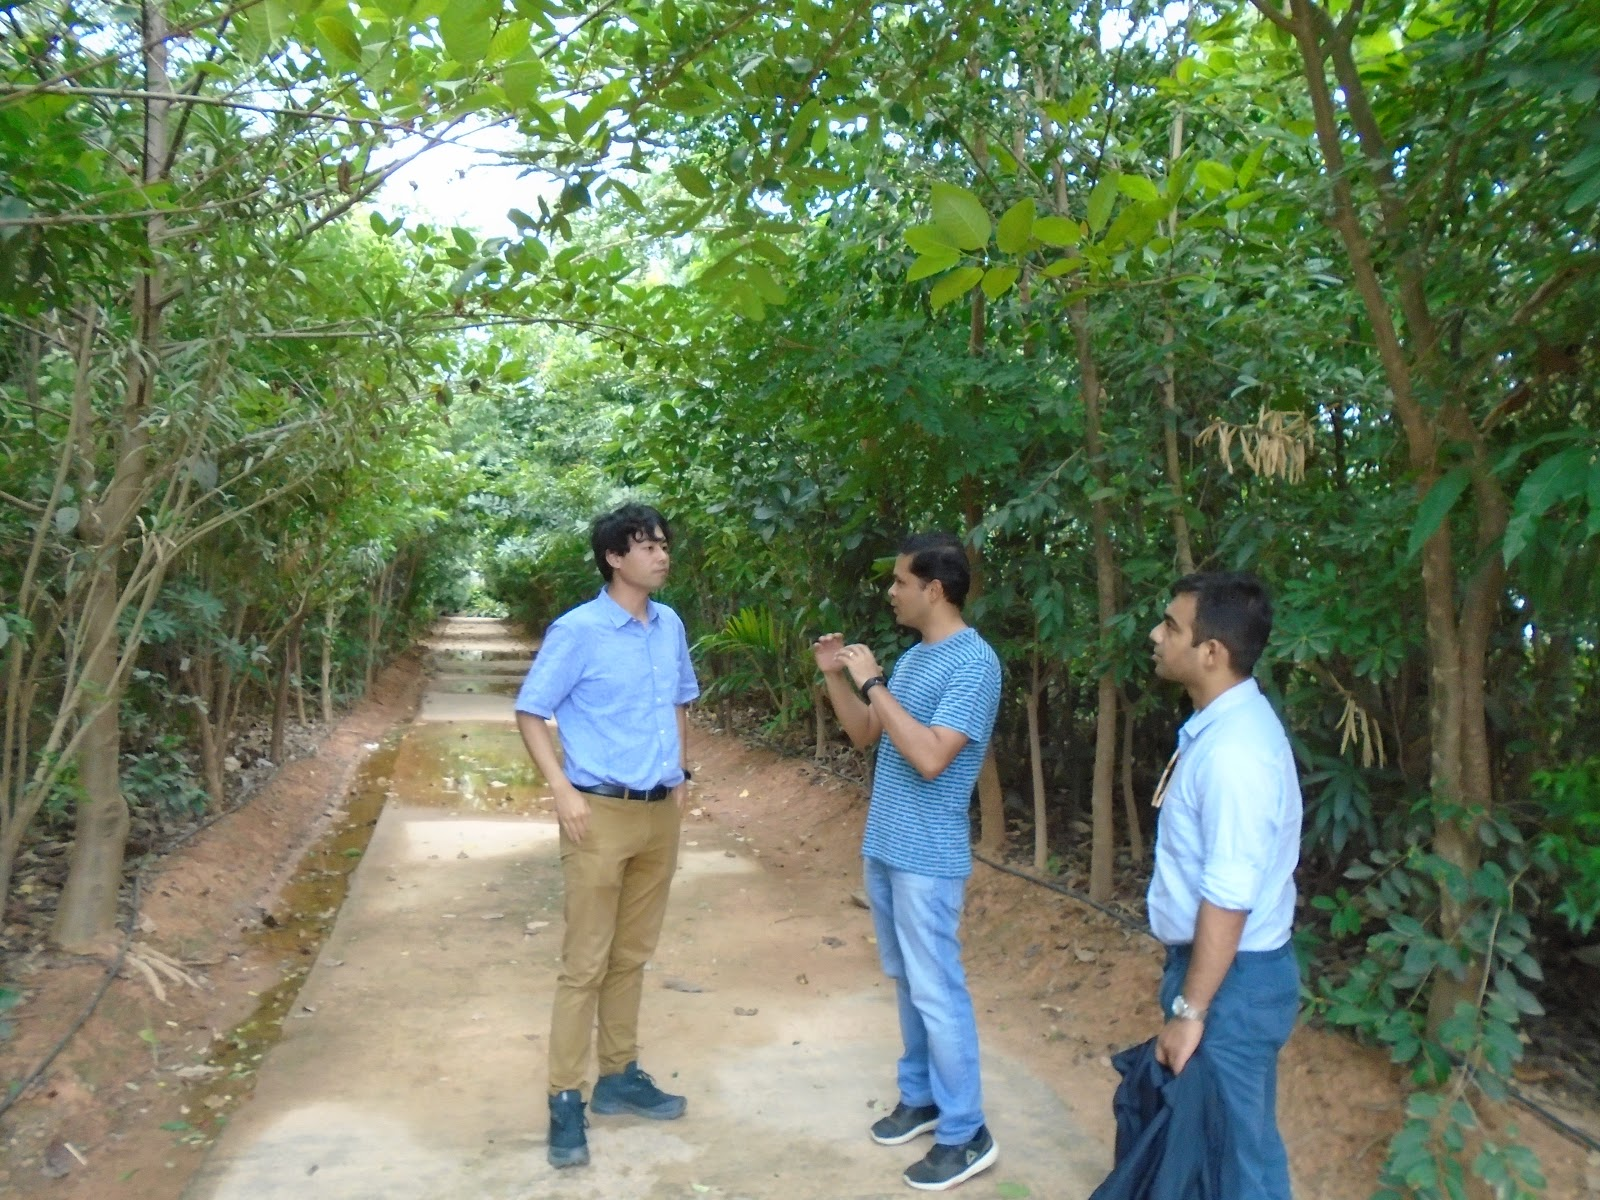 miyawaki technique of afforestation has been accepted globally and has even led to proven results in much lesser time than the ordinary ways of plantation. Midorization Project ßドリゼーションプロジェクト Episode 667 Bangalore Day 2 Pm Miyawaki Forest Ǭ¬667話 Ðンガロール二日目午後 ßヤワキの森